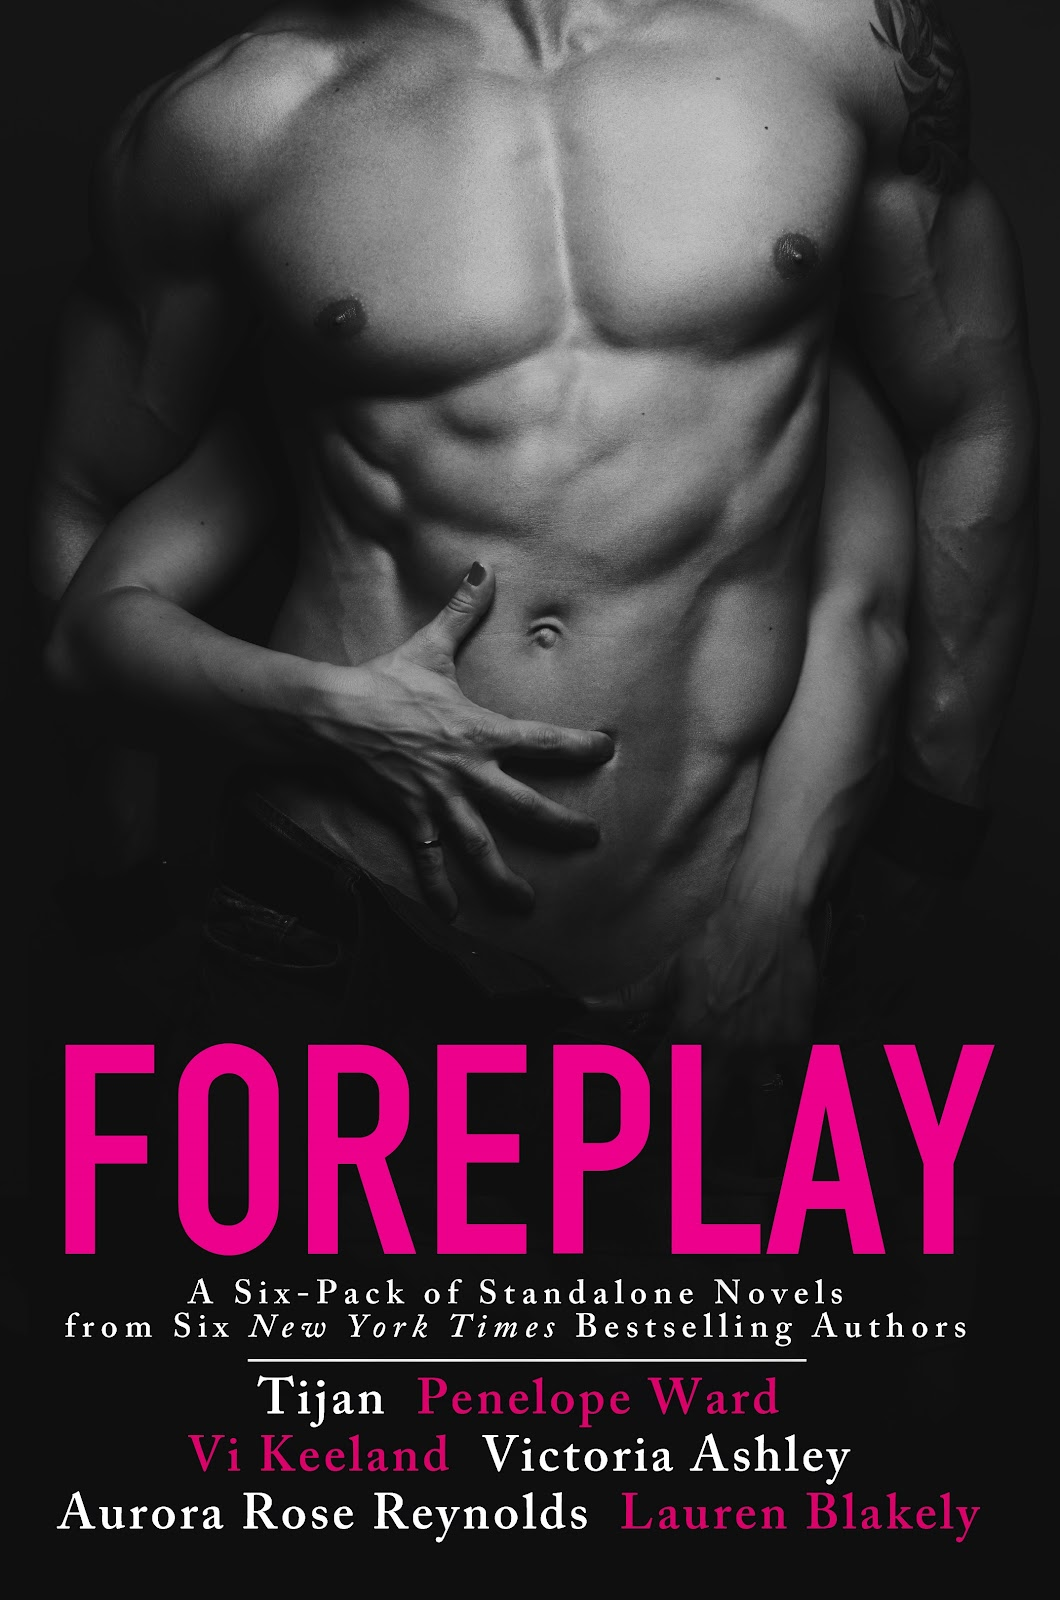 ForeplayBookCover6x9-FINAL2.jpg